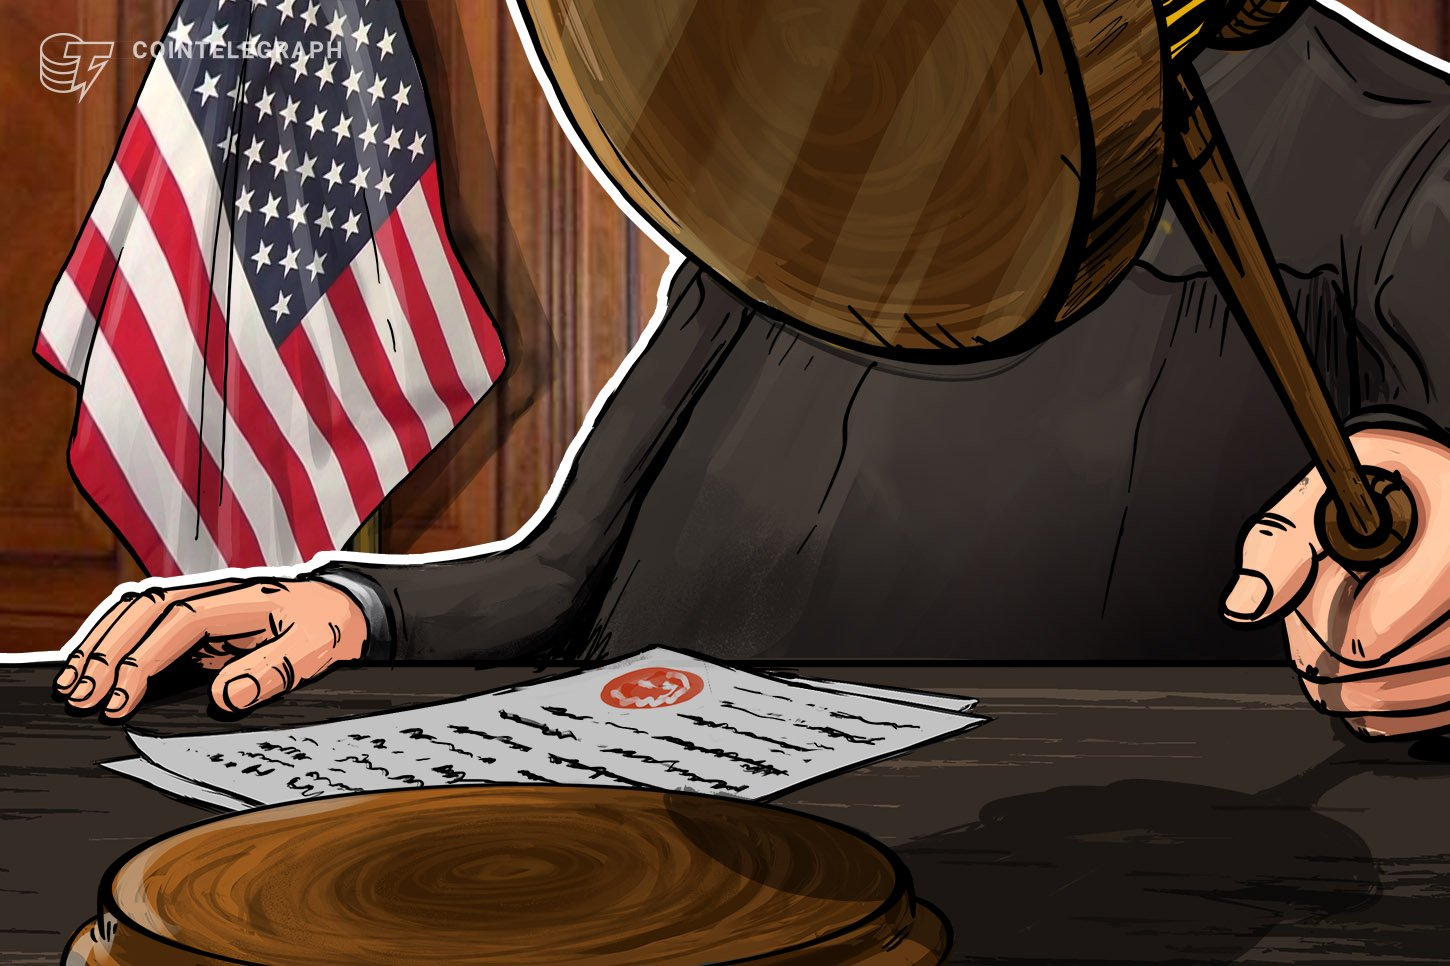 Pump and Dump Complaints Dismissed Against Crypto Mining Firm